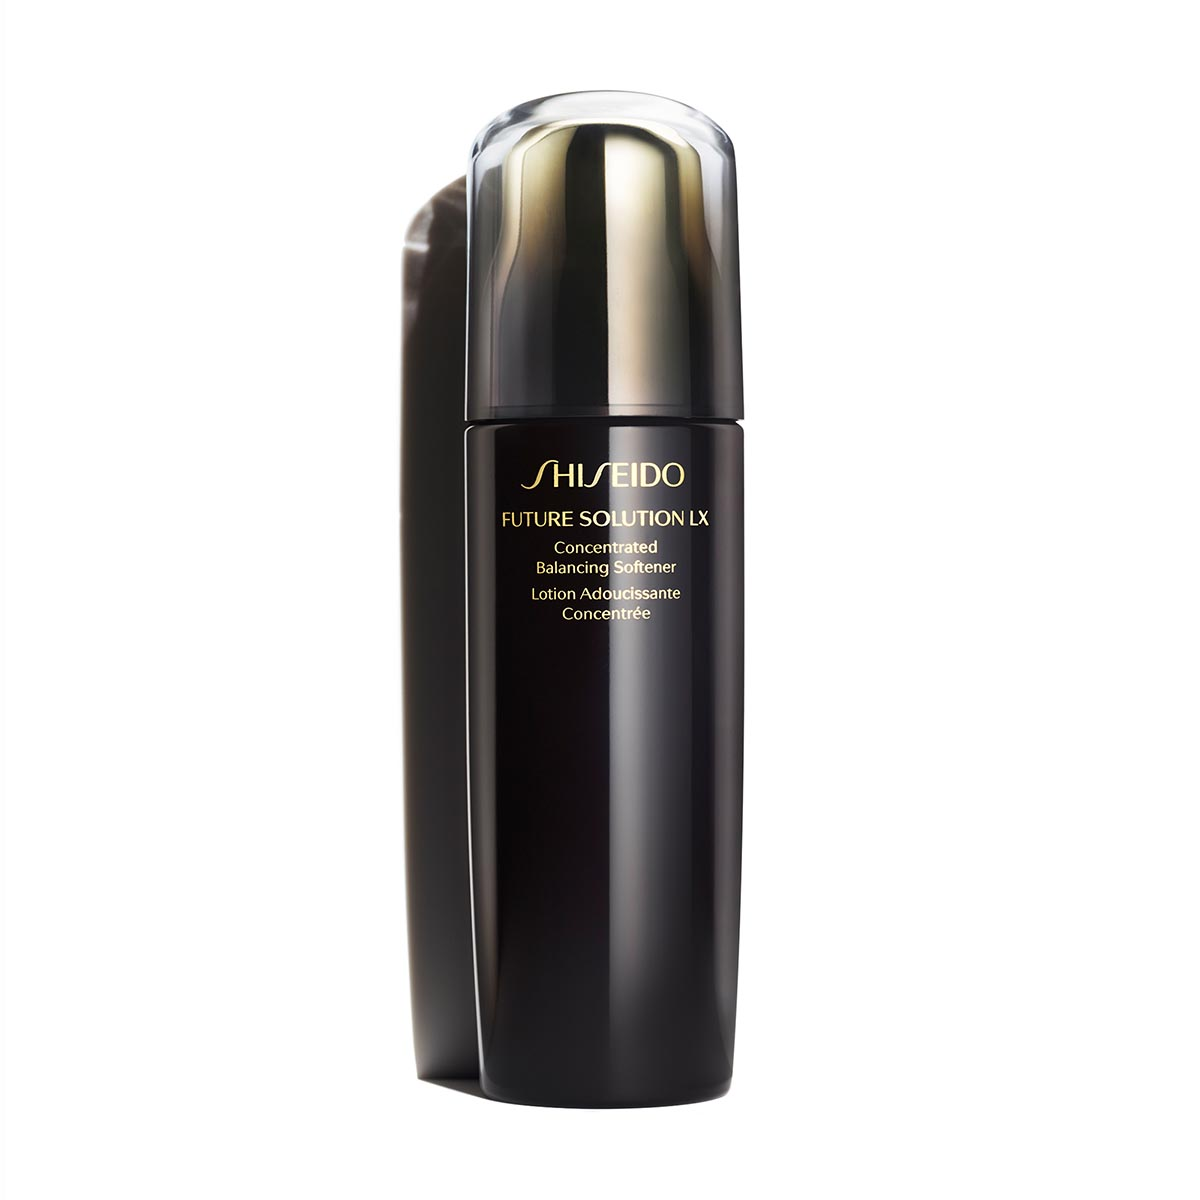 Shiseido future solution lx softener locion 170ml